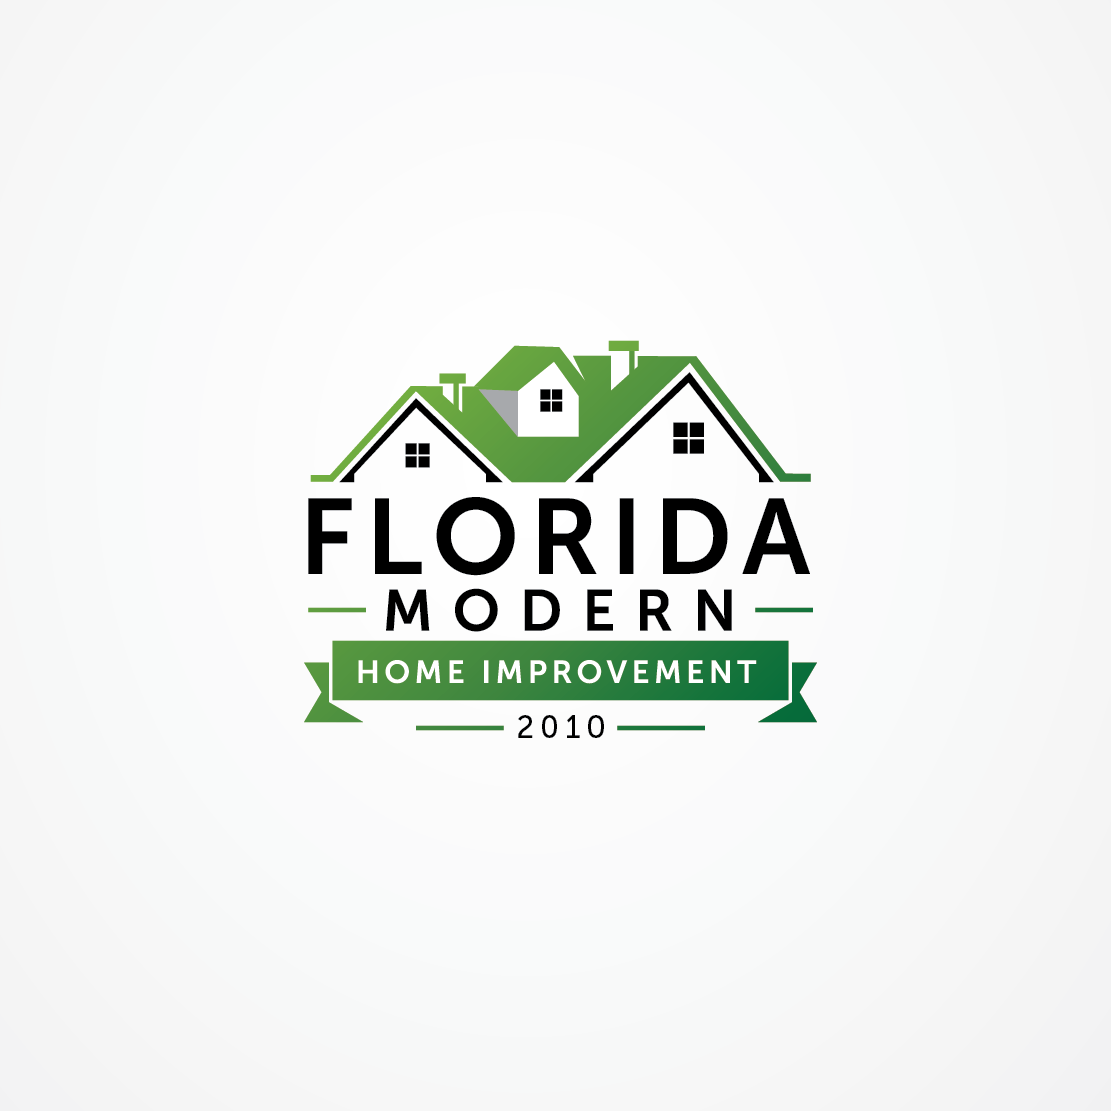 Home Improvement Design: Bold, Modern, Home Improvement Logo Design For Florida